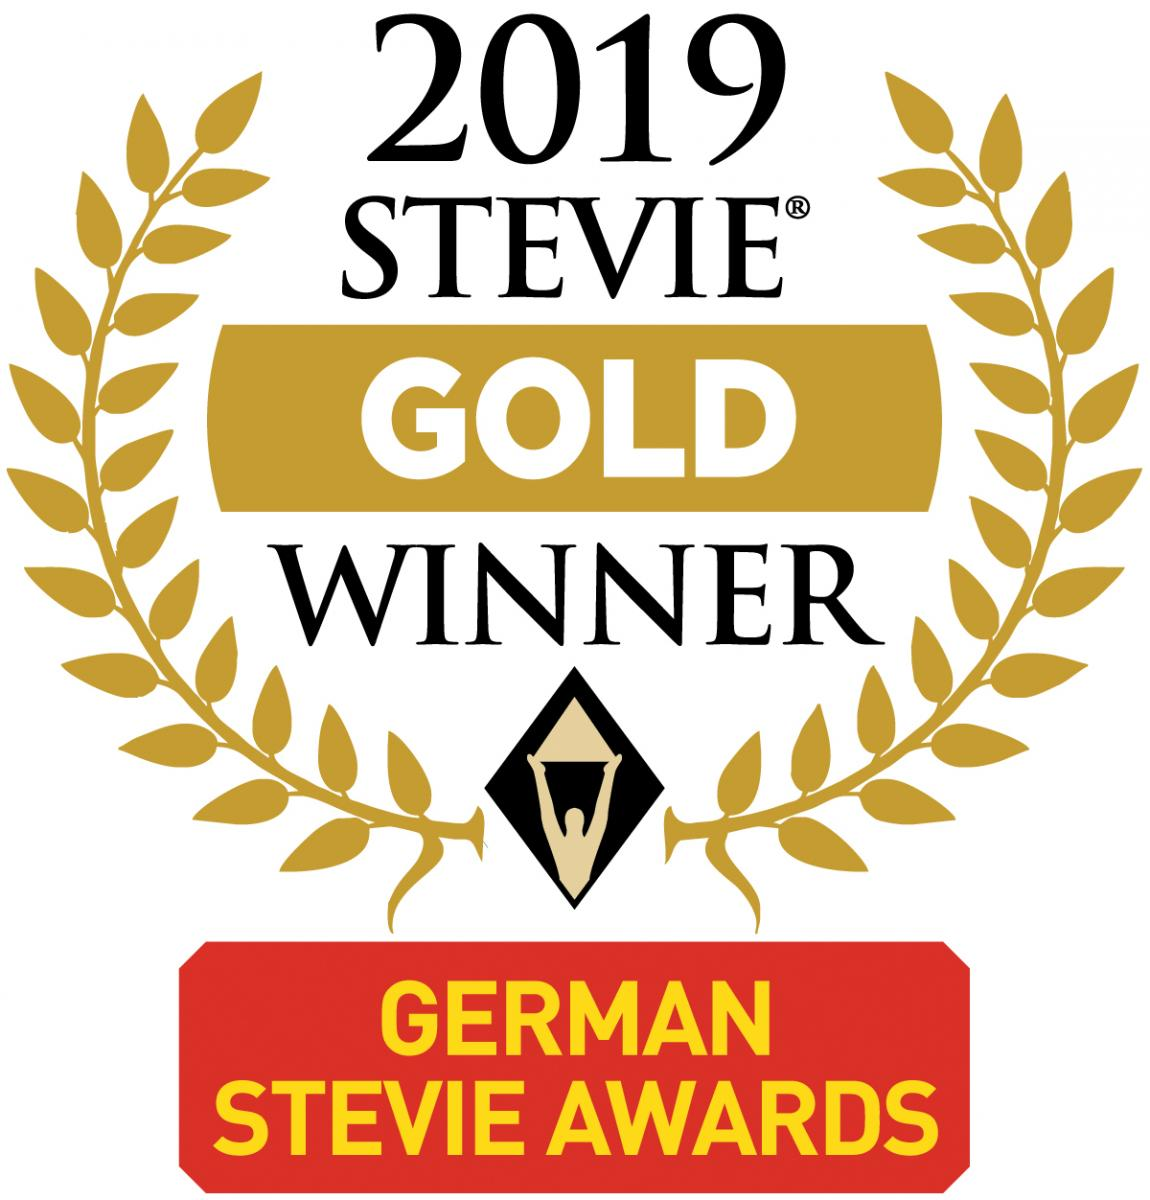 Stevie Award Gold